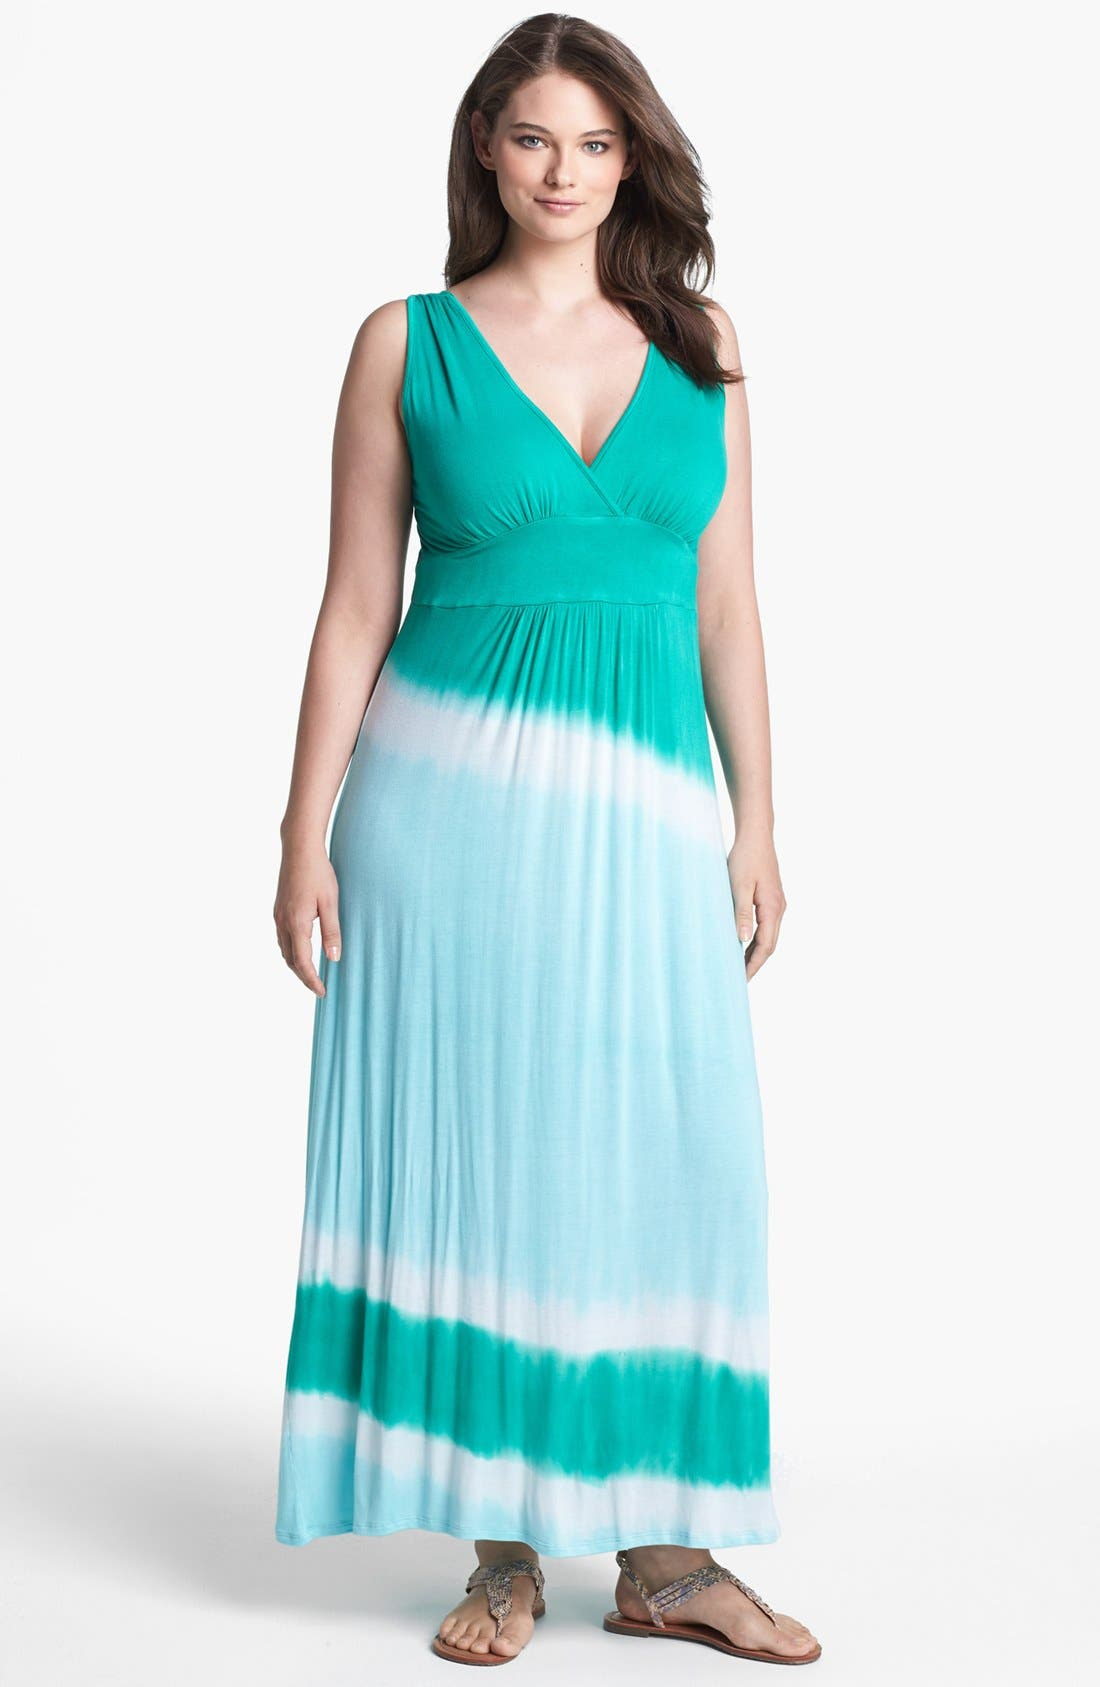 Alternate Image 1 Selected - Loveappella Tie Dye Jersey Maxi Dress (Plus Size)